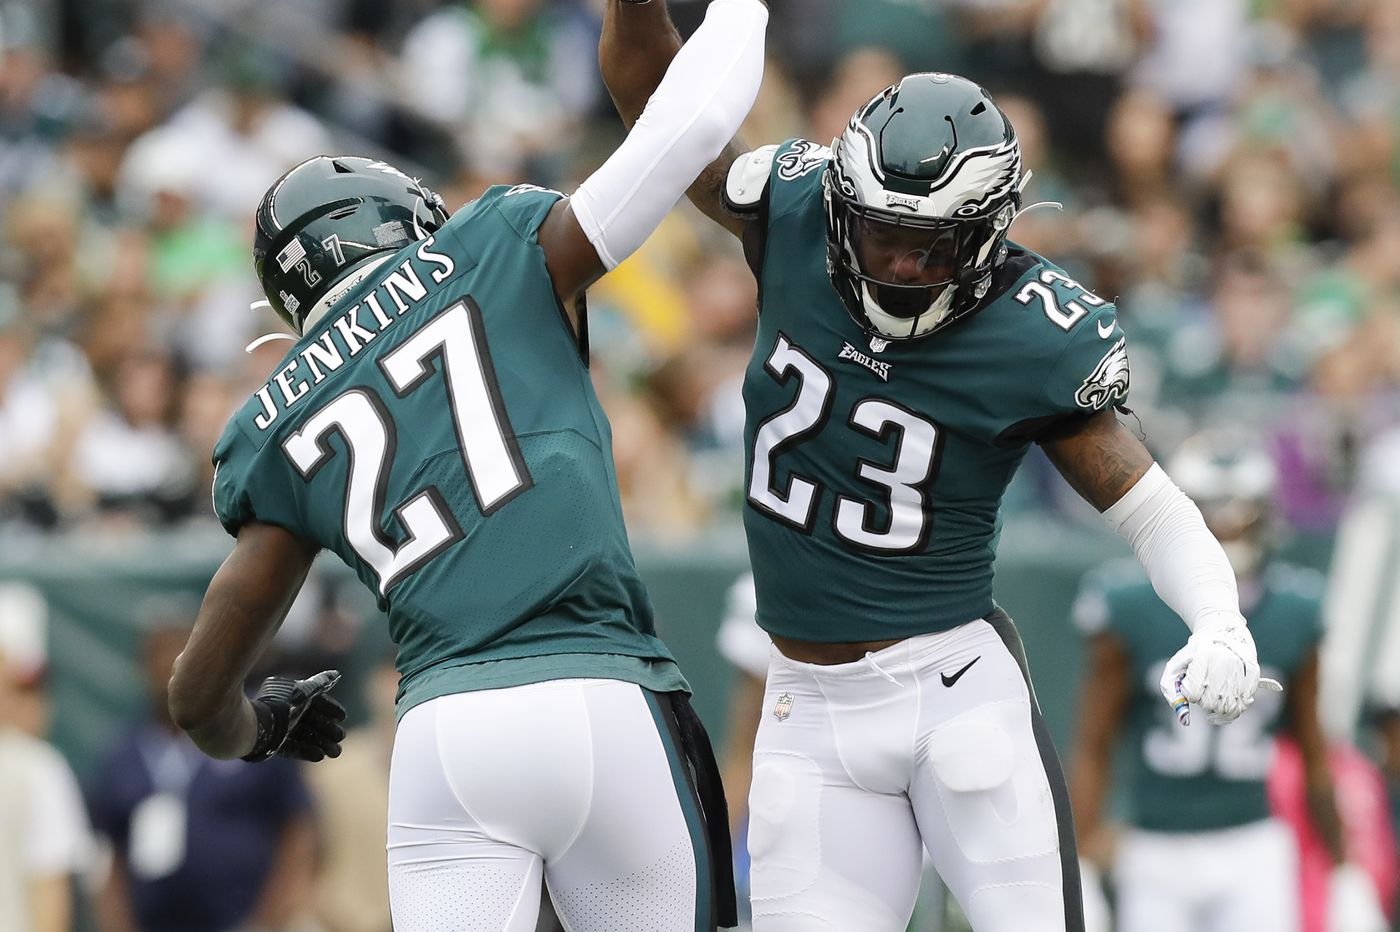 Eagles re-sign Rodney McLeod to two-year deal after releasing Malcolm Jenkins